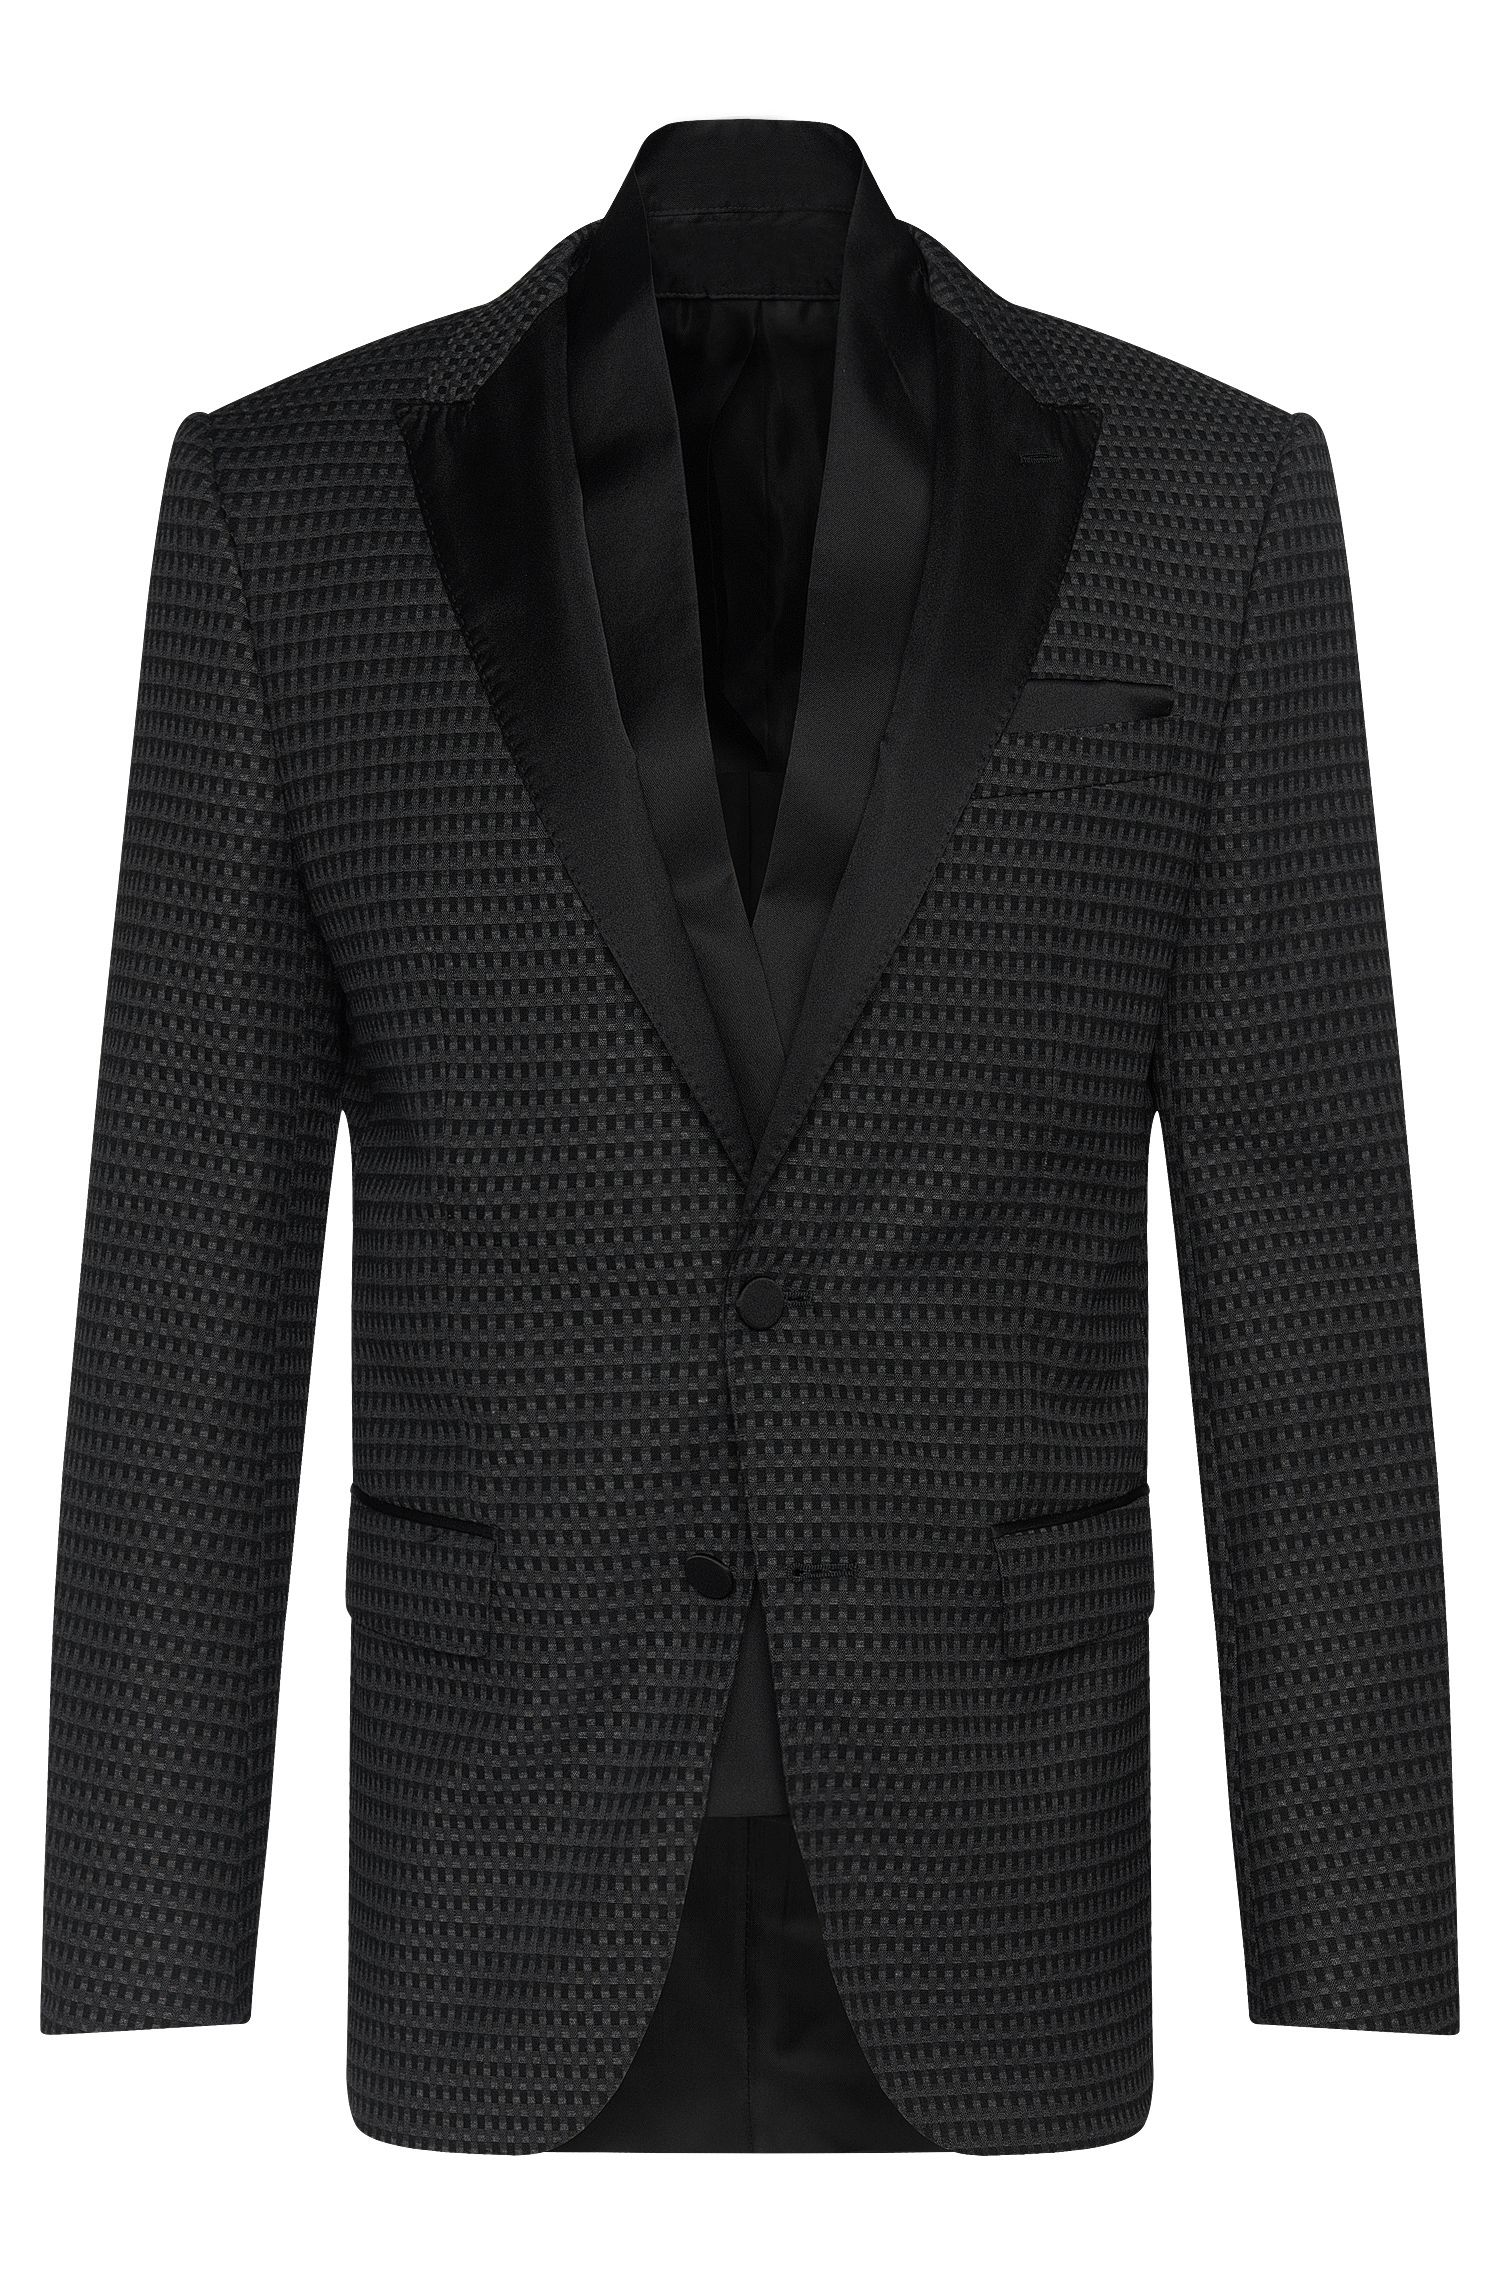 'Havit' | Slim Fit, Stretch Cotton Blend Dinner Jacket, Scarf